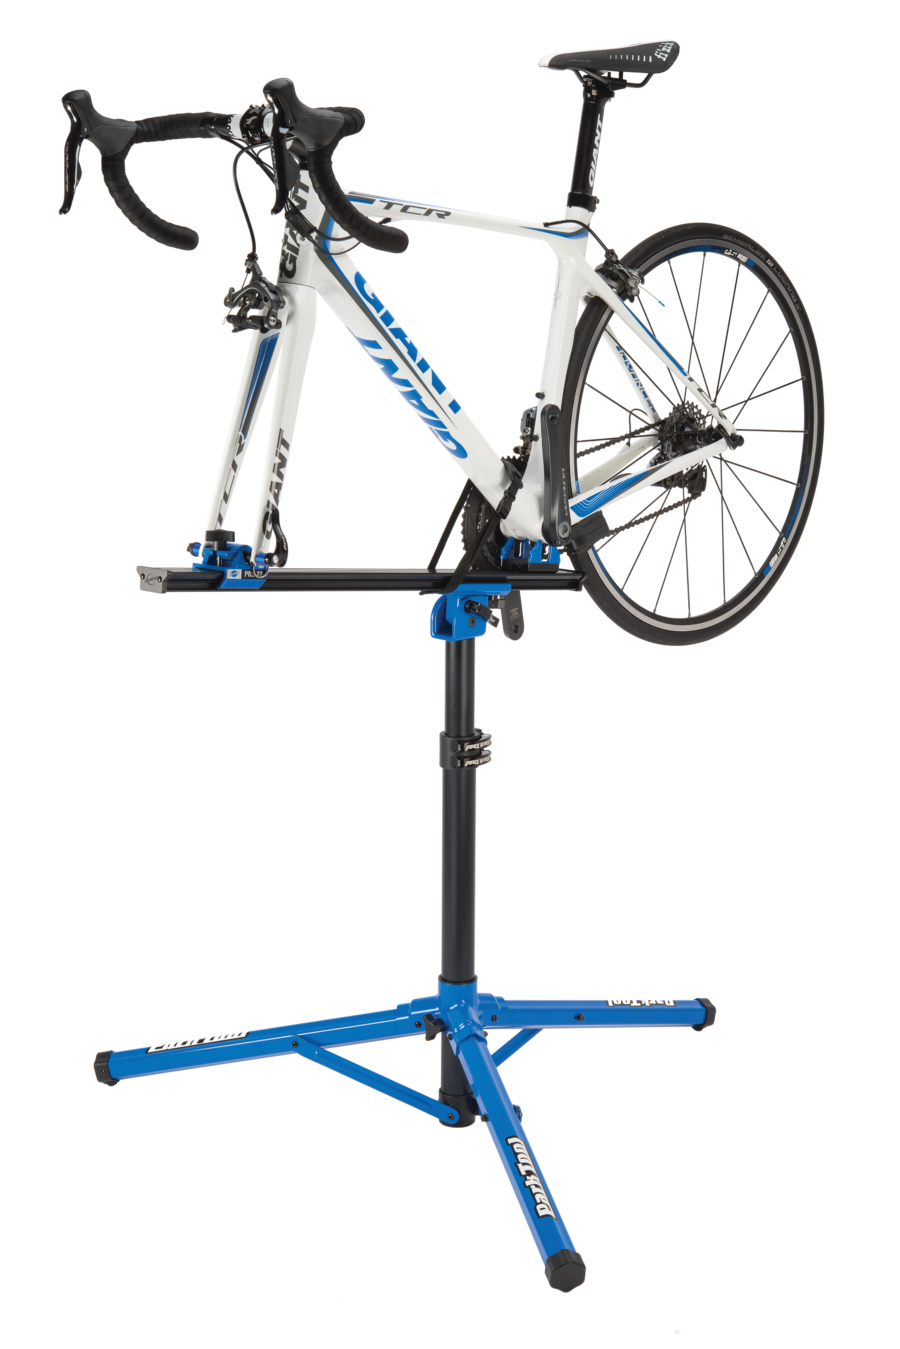 park tool prs 20 team race stand review